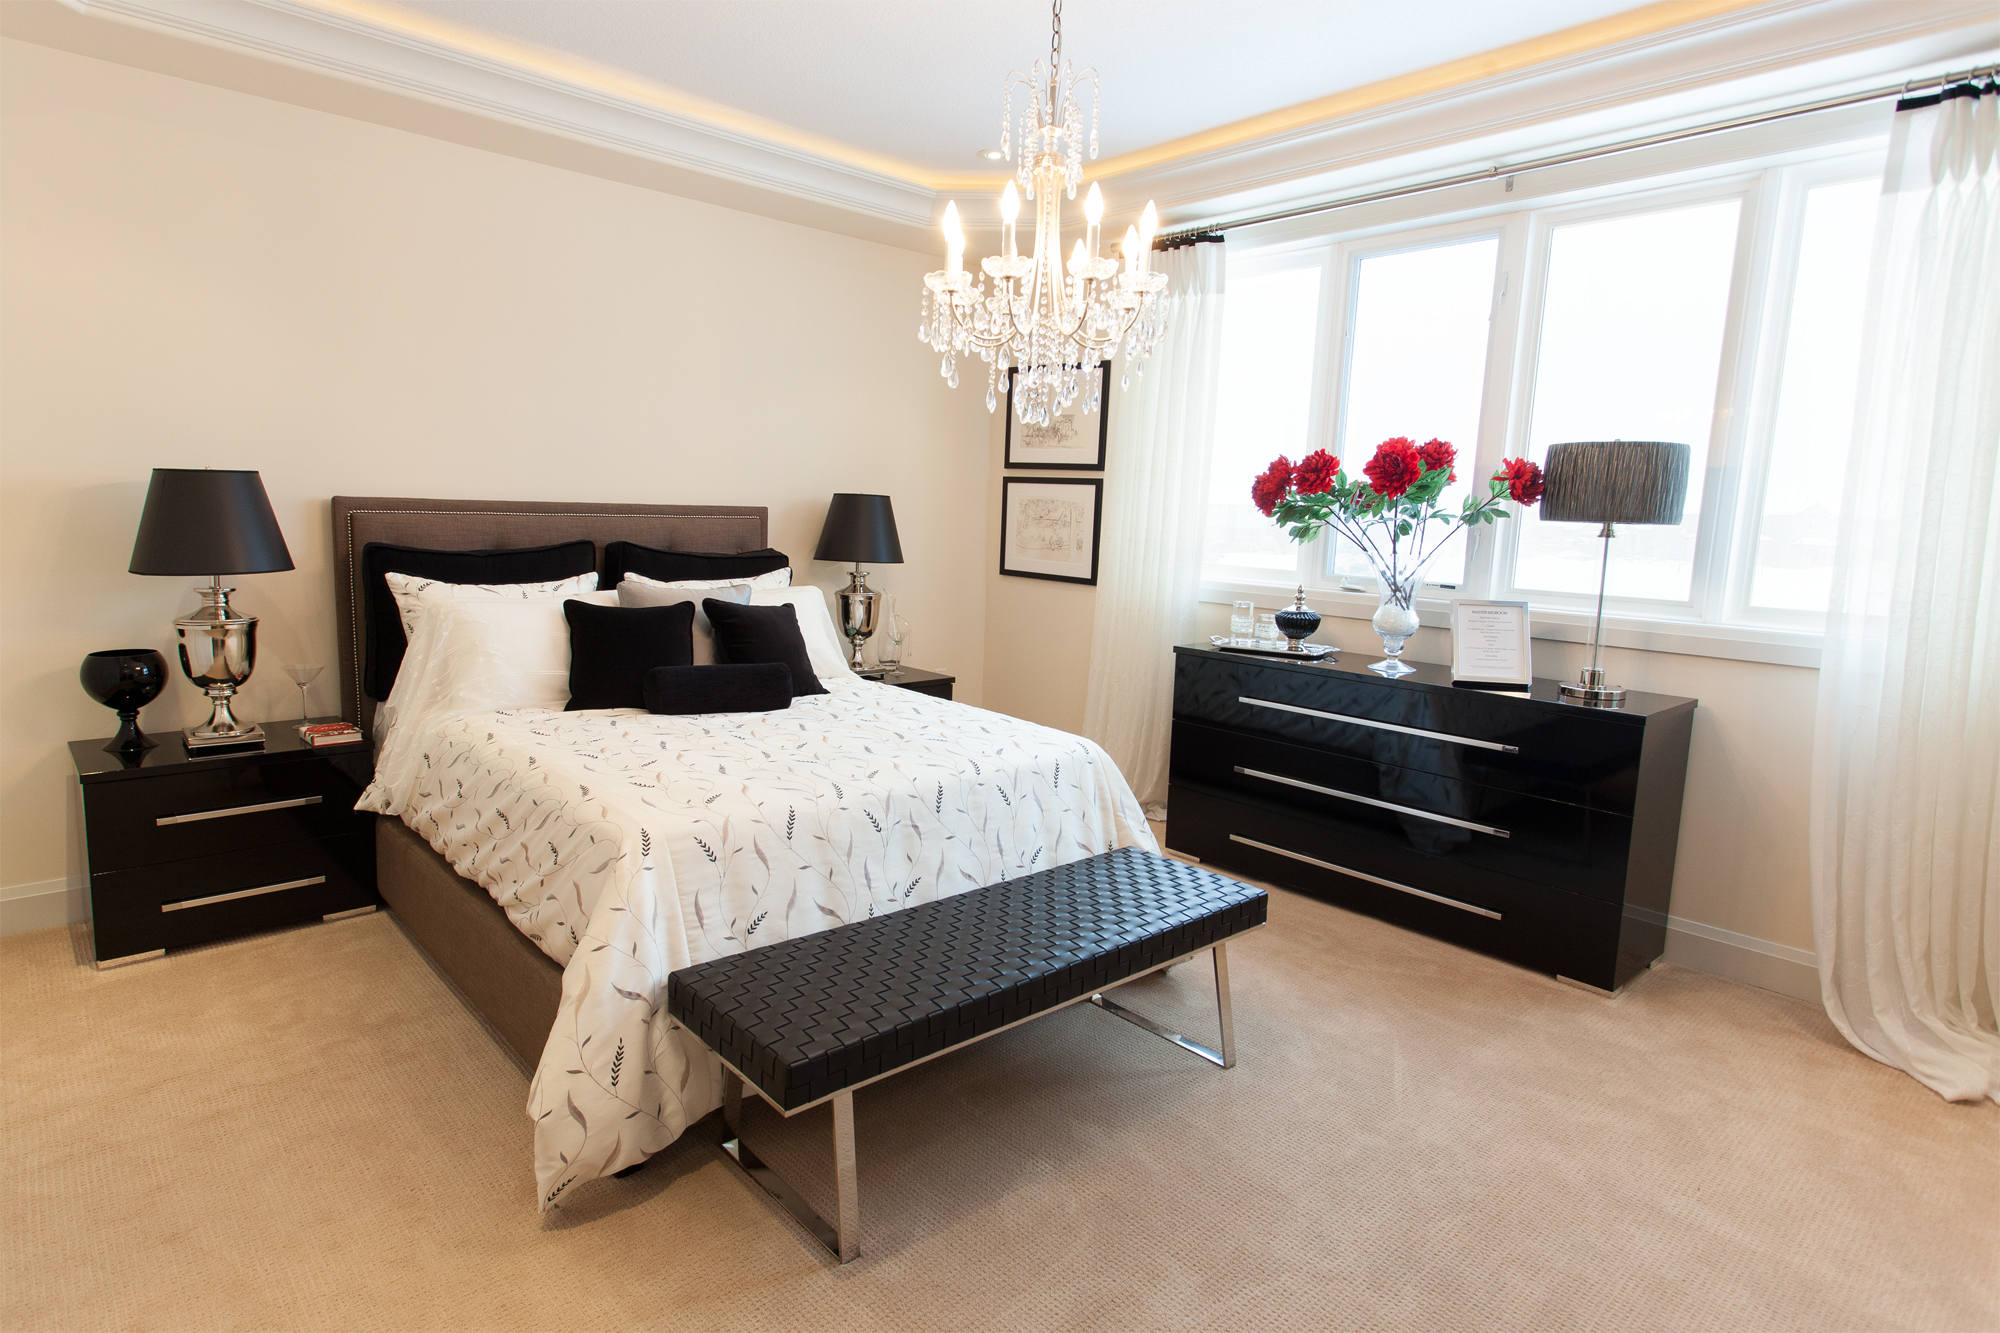 Chic master bedroom real-estate photo